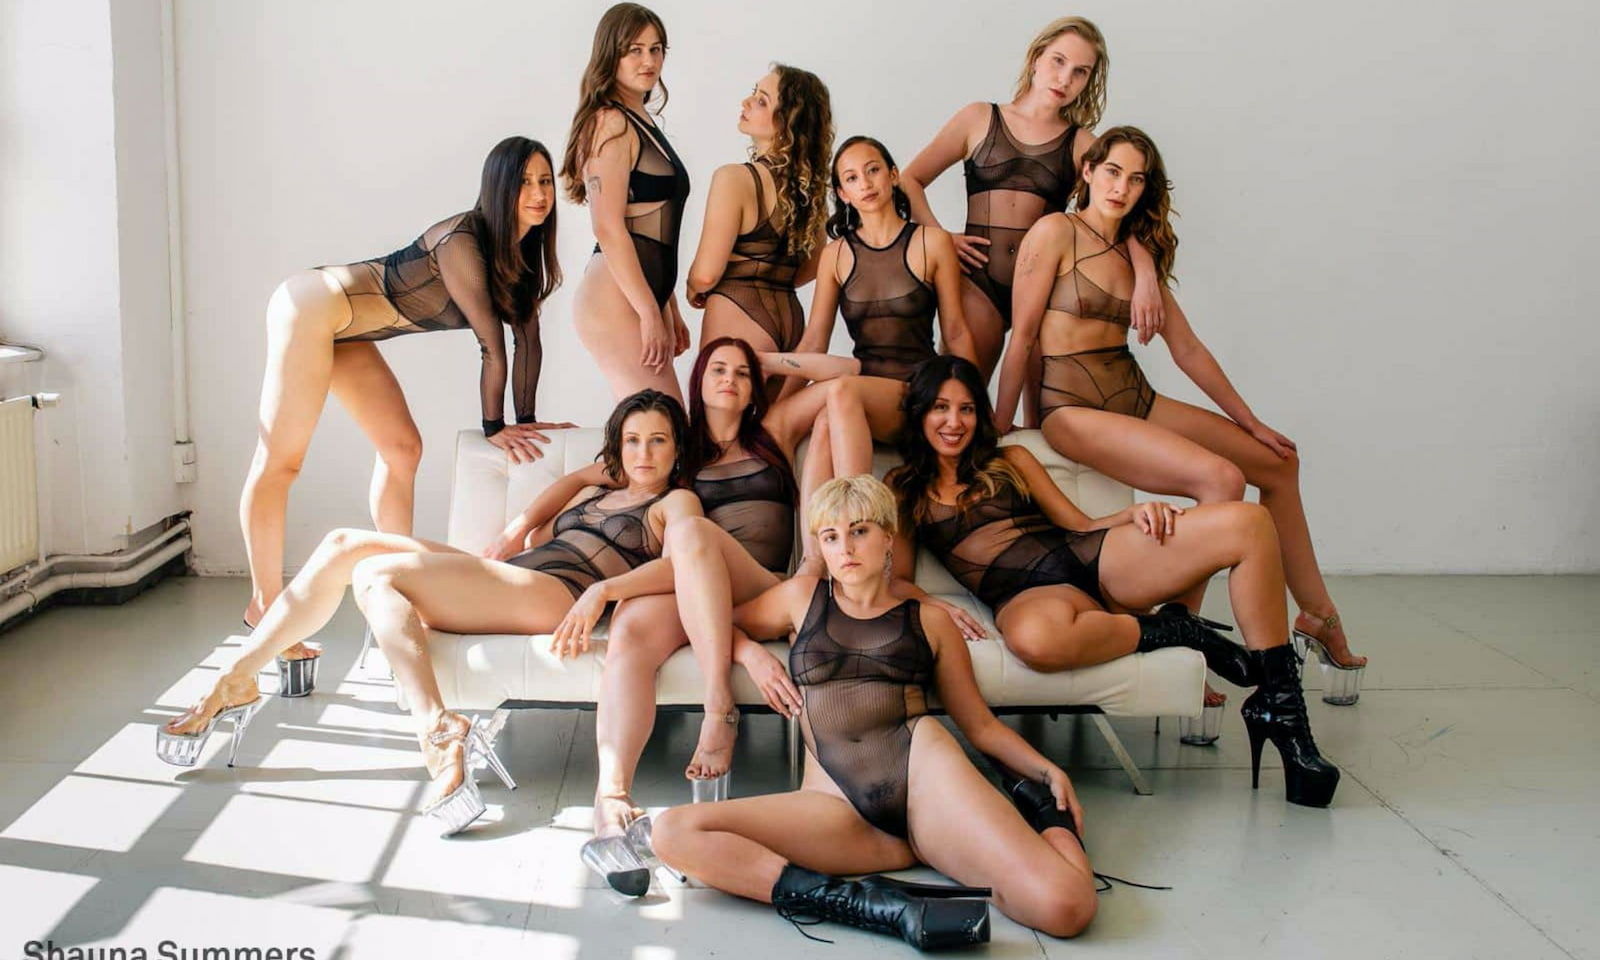 The Berlin Strippers Collective: when sex workers fight back